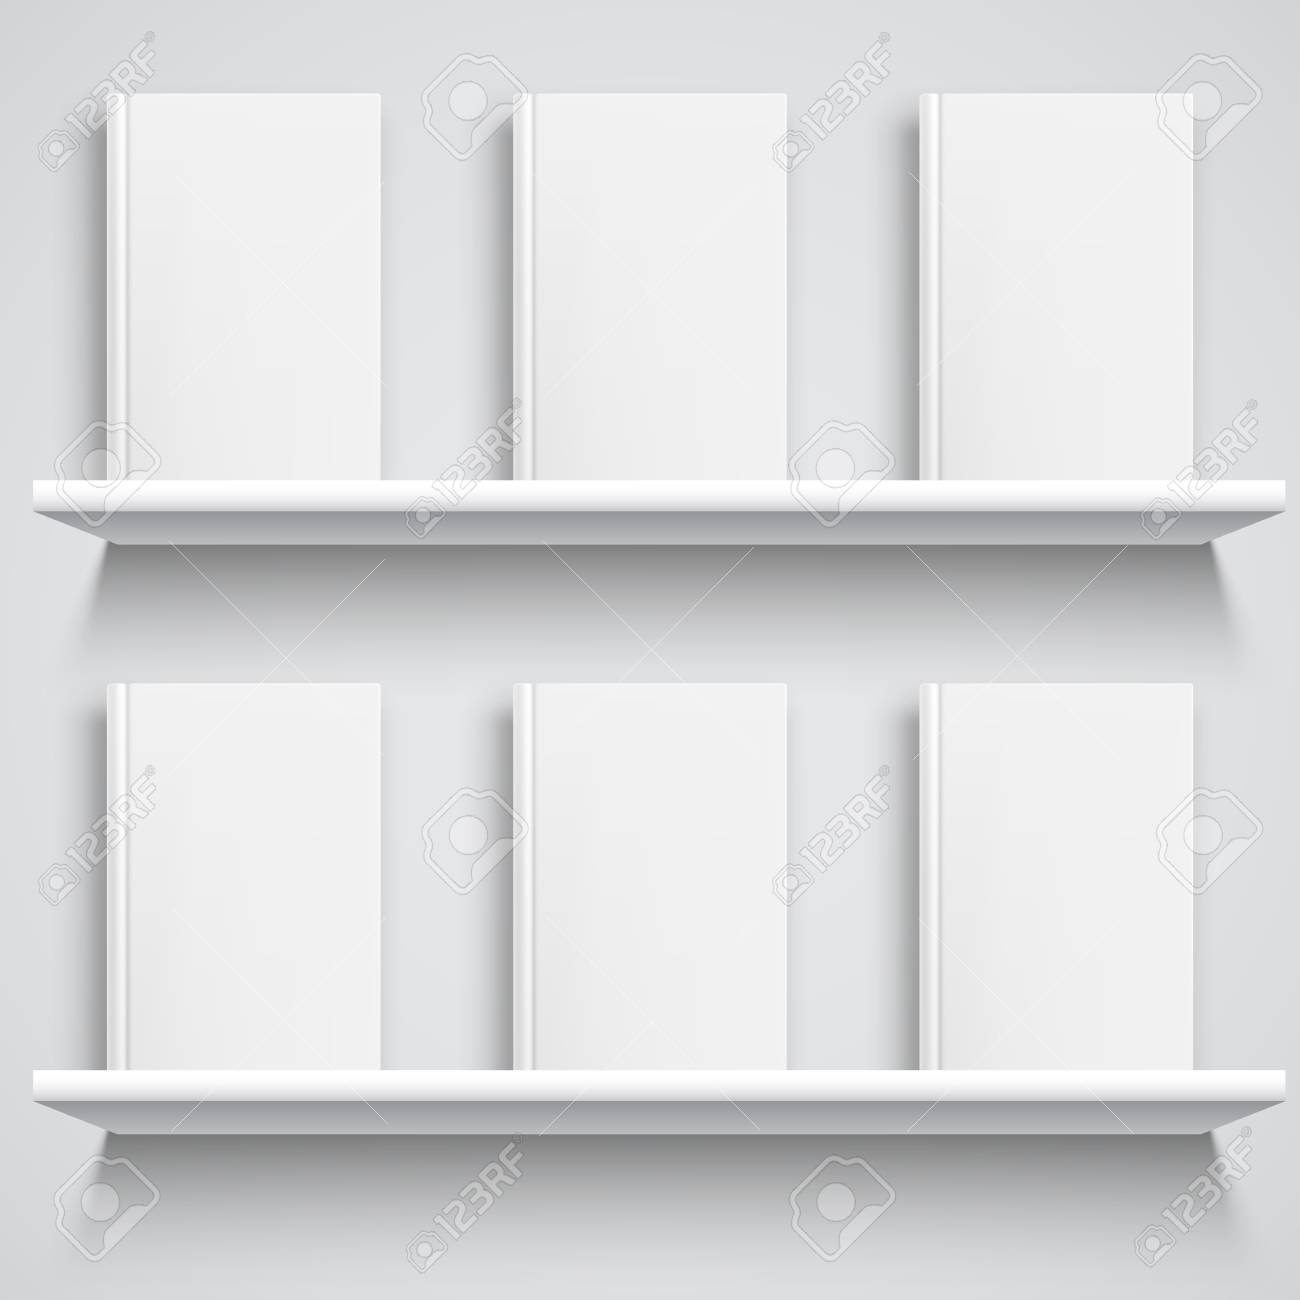 Peachy Two White Bookshelves And Books With Empty Blank Covers White Download Free Architecture Designs Photstoregrimeyleaguecom